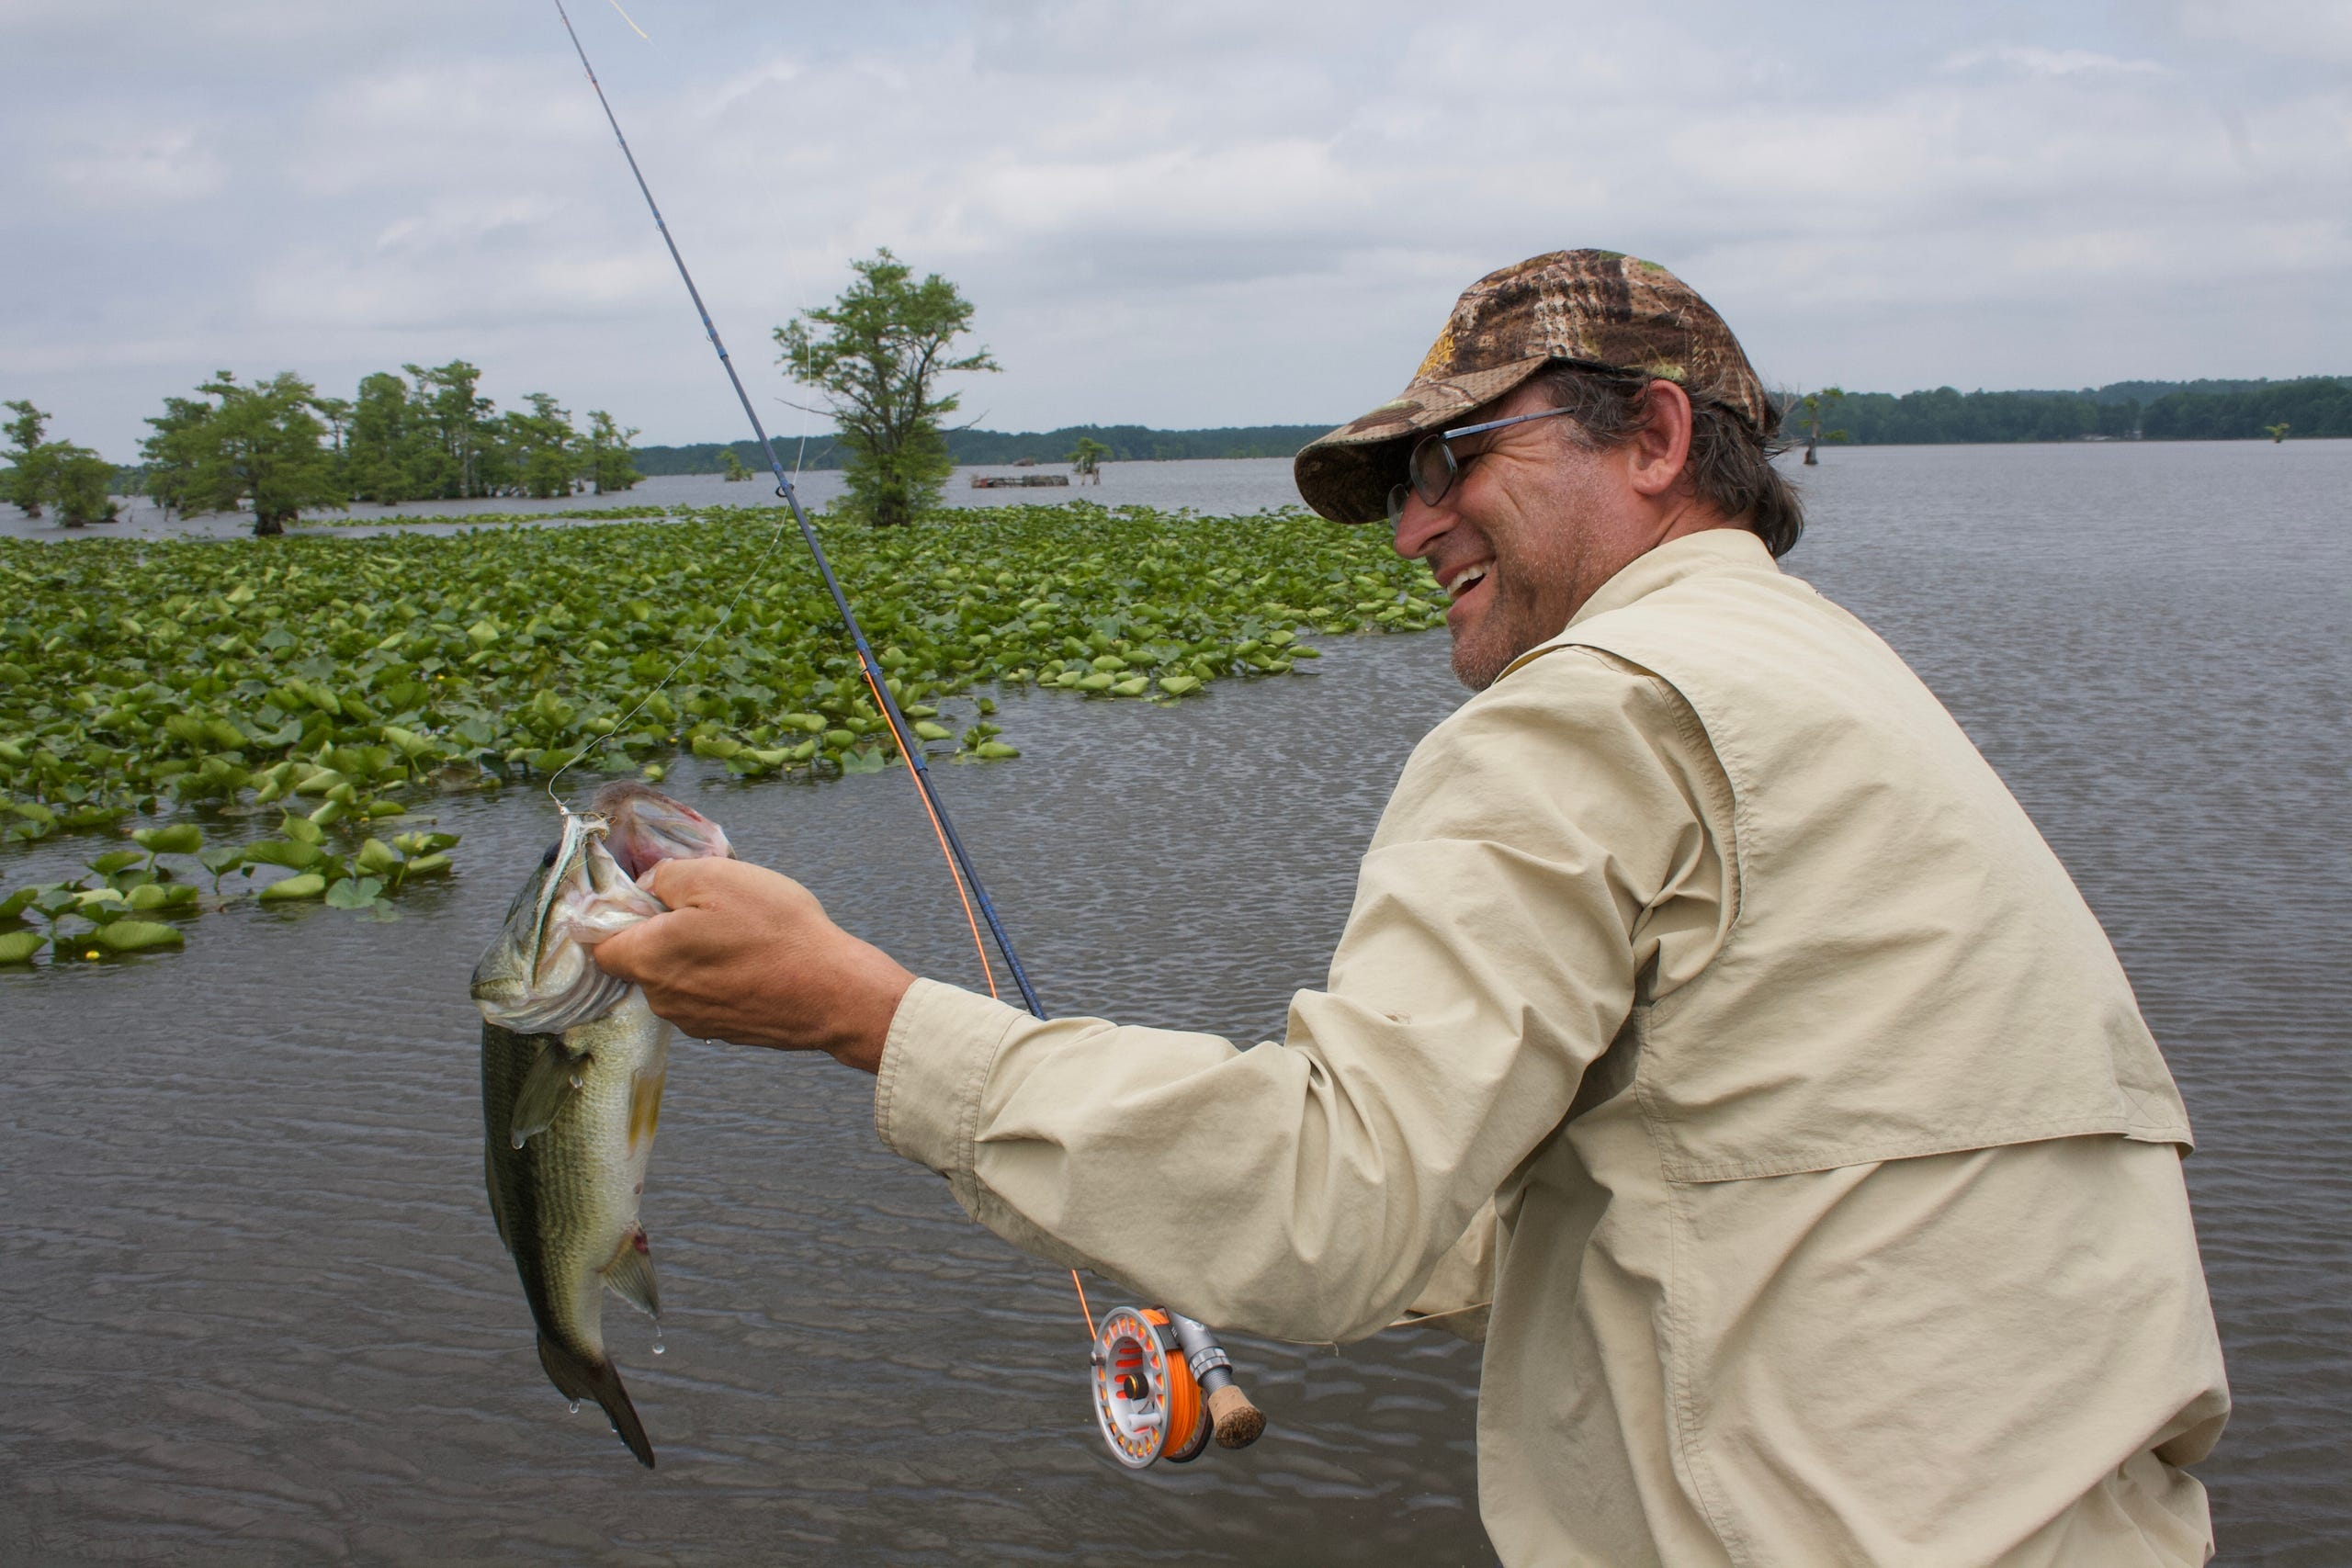 Bass fishing on the fly: Anglers in action